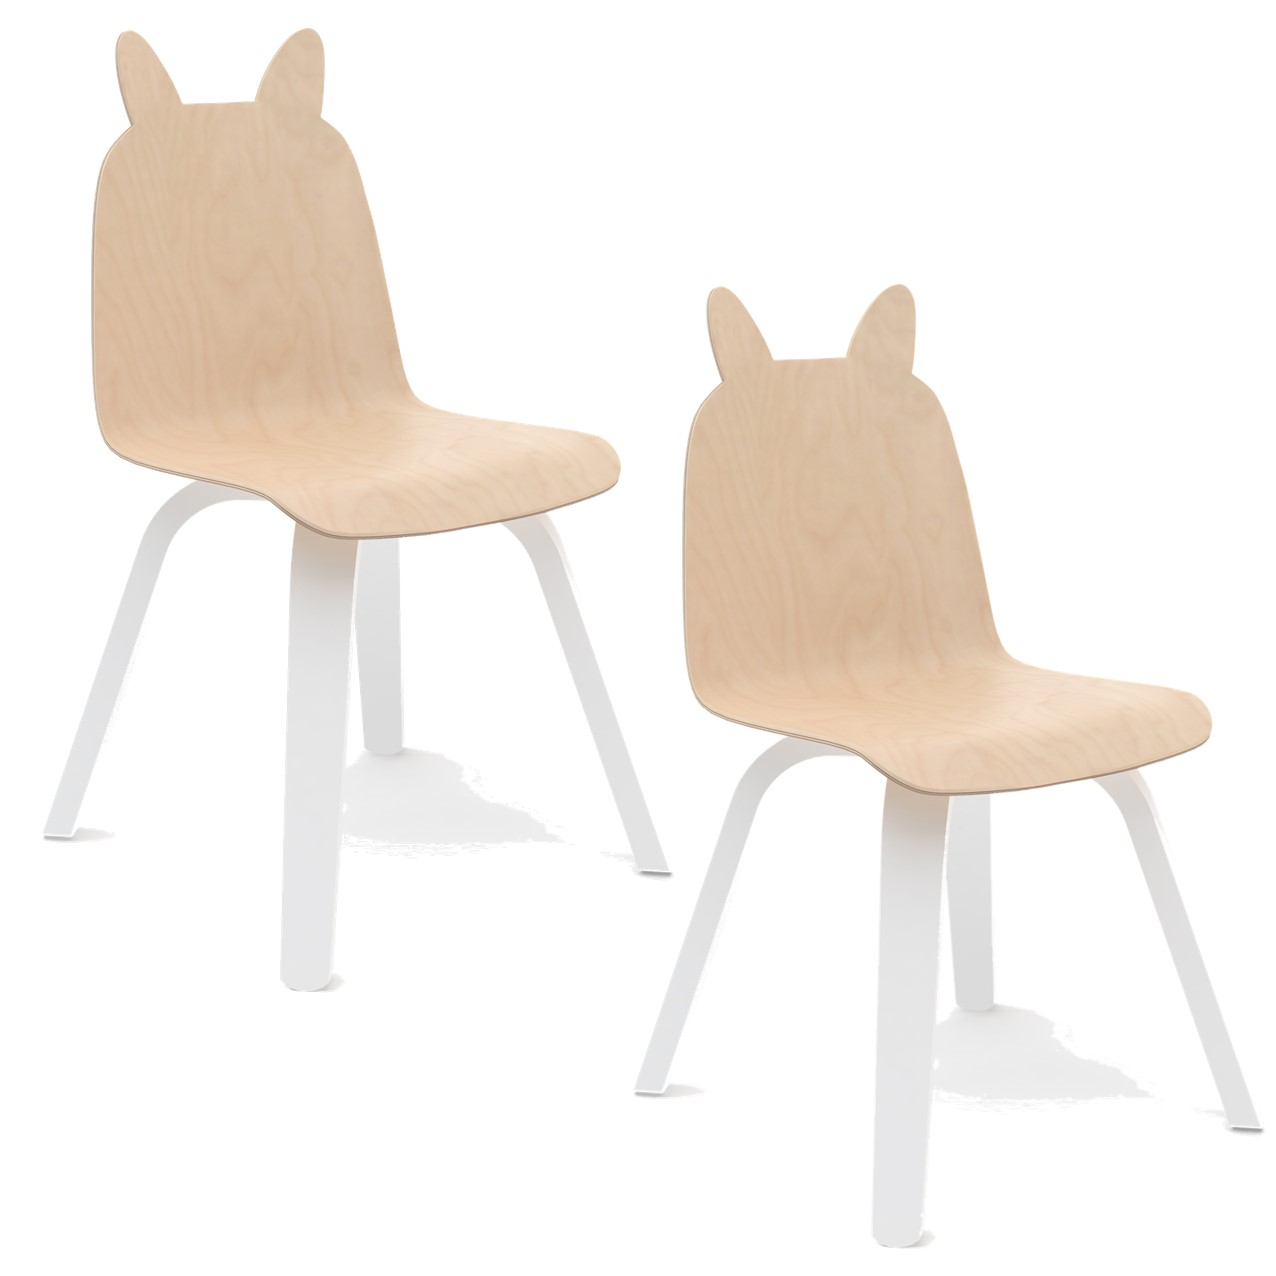 """Oeuf NYC - Chaise à oreilles """"Lapin"""" - Bouleau"""